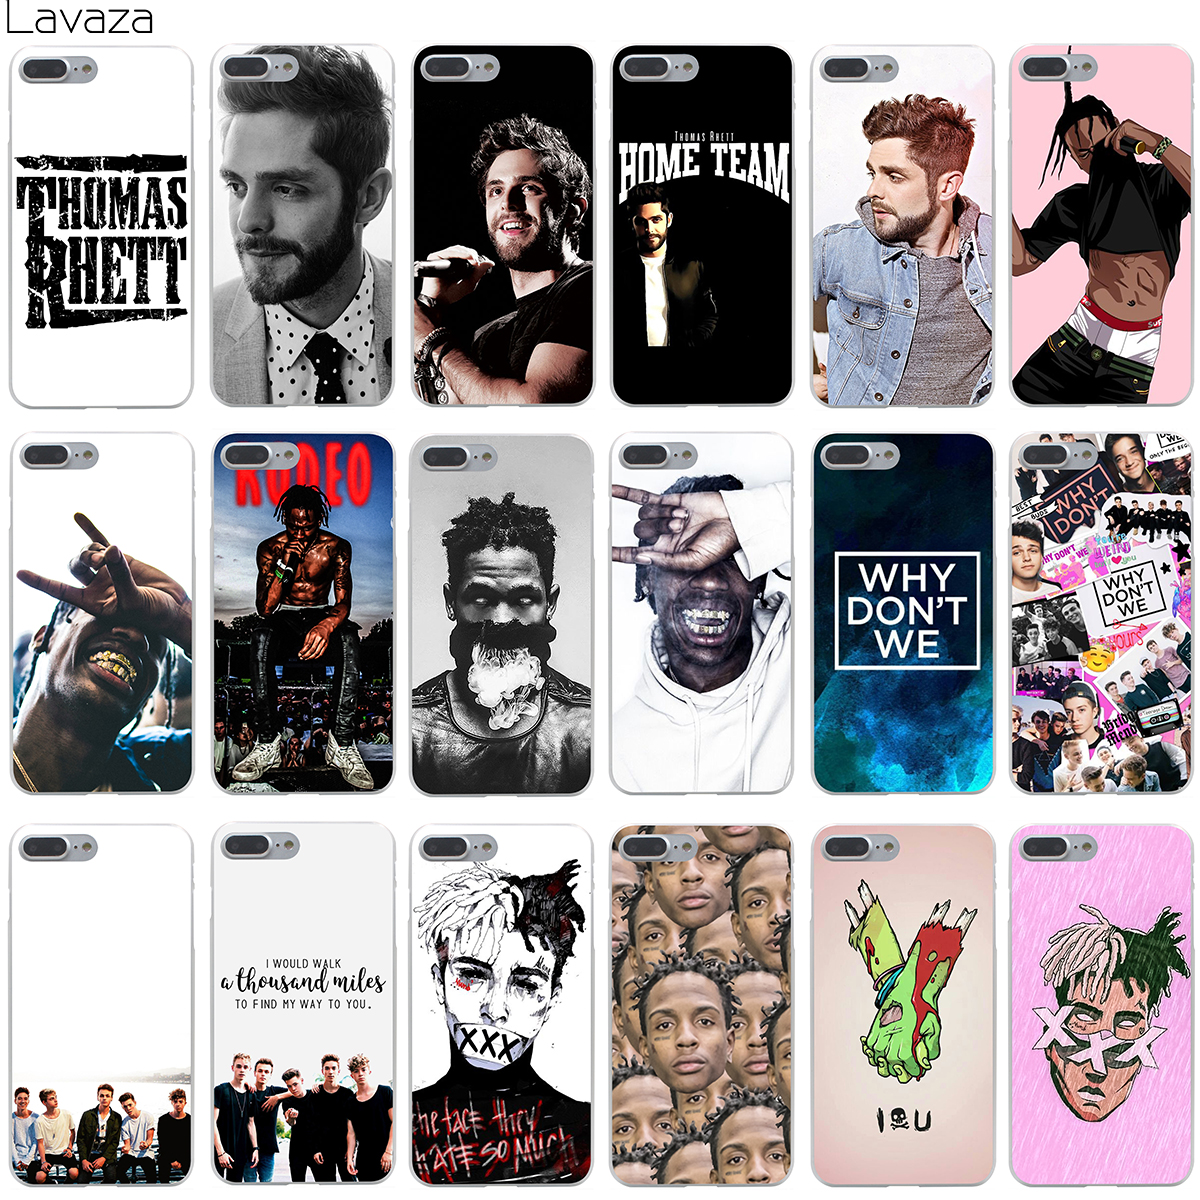 Lavaza Thomas Rhett Travis Scott Neden XXXTentacion Kapak Kılıf Apple iphone 8 7 Artı